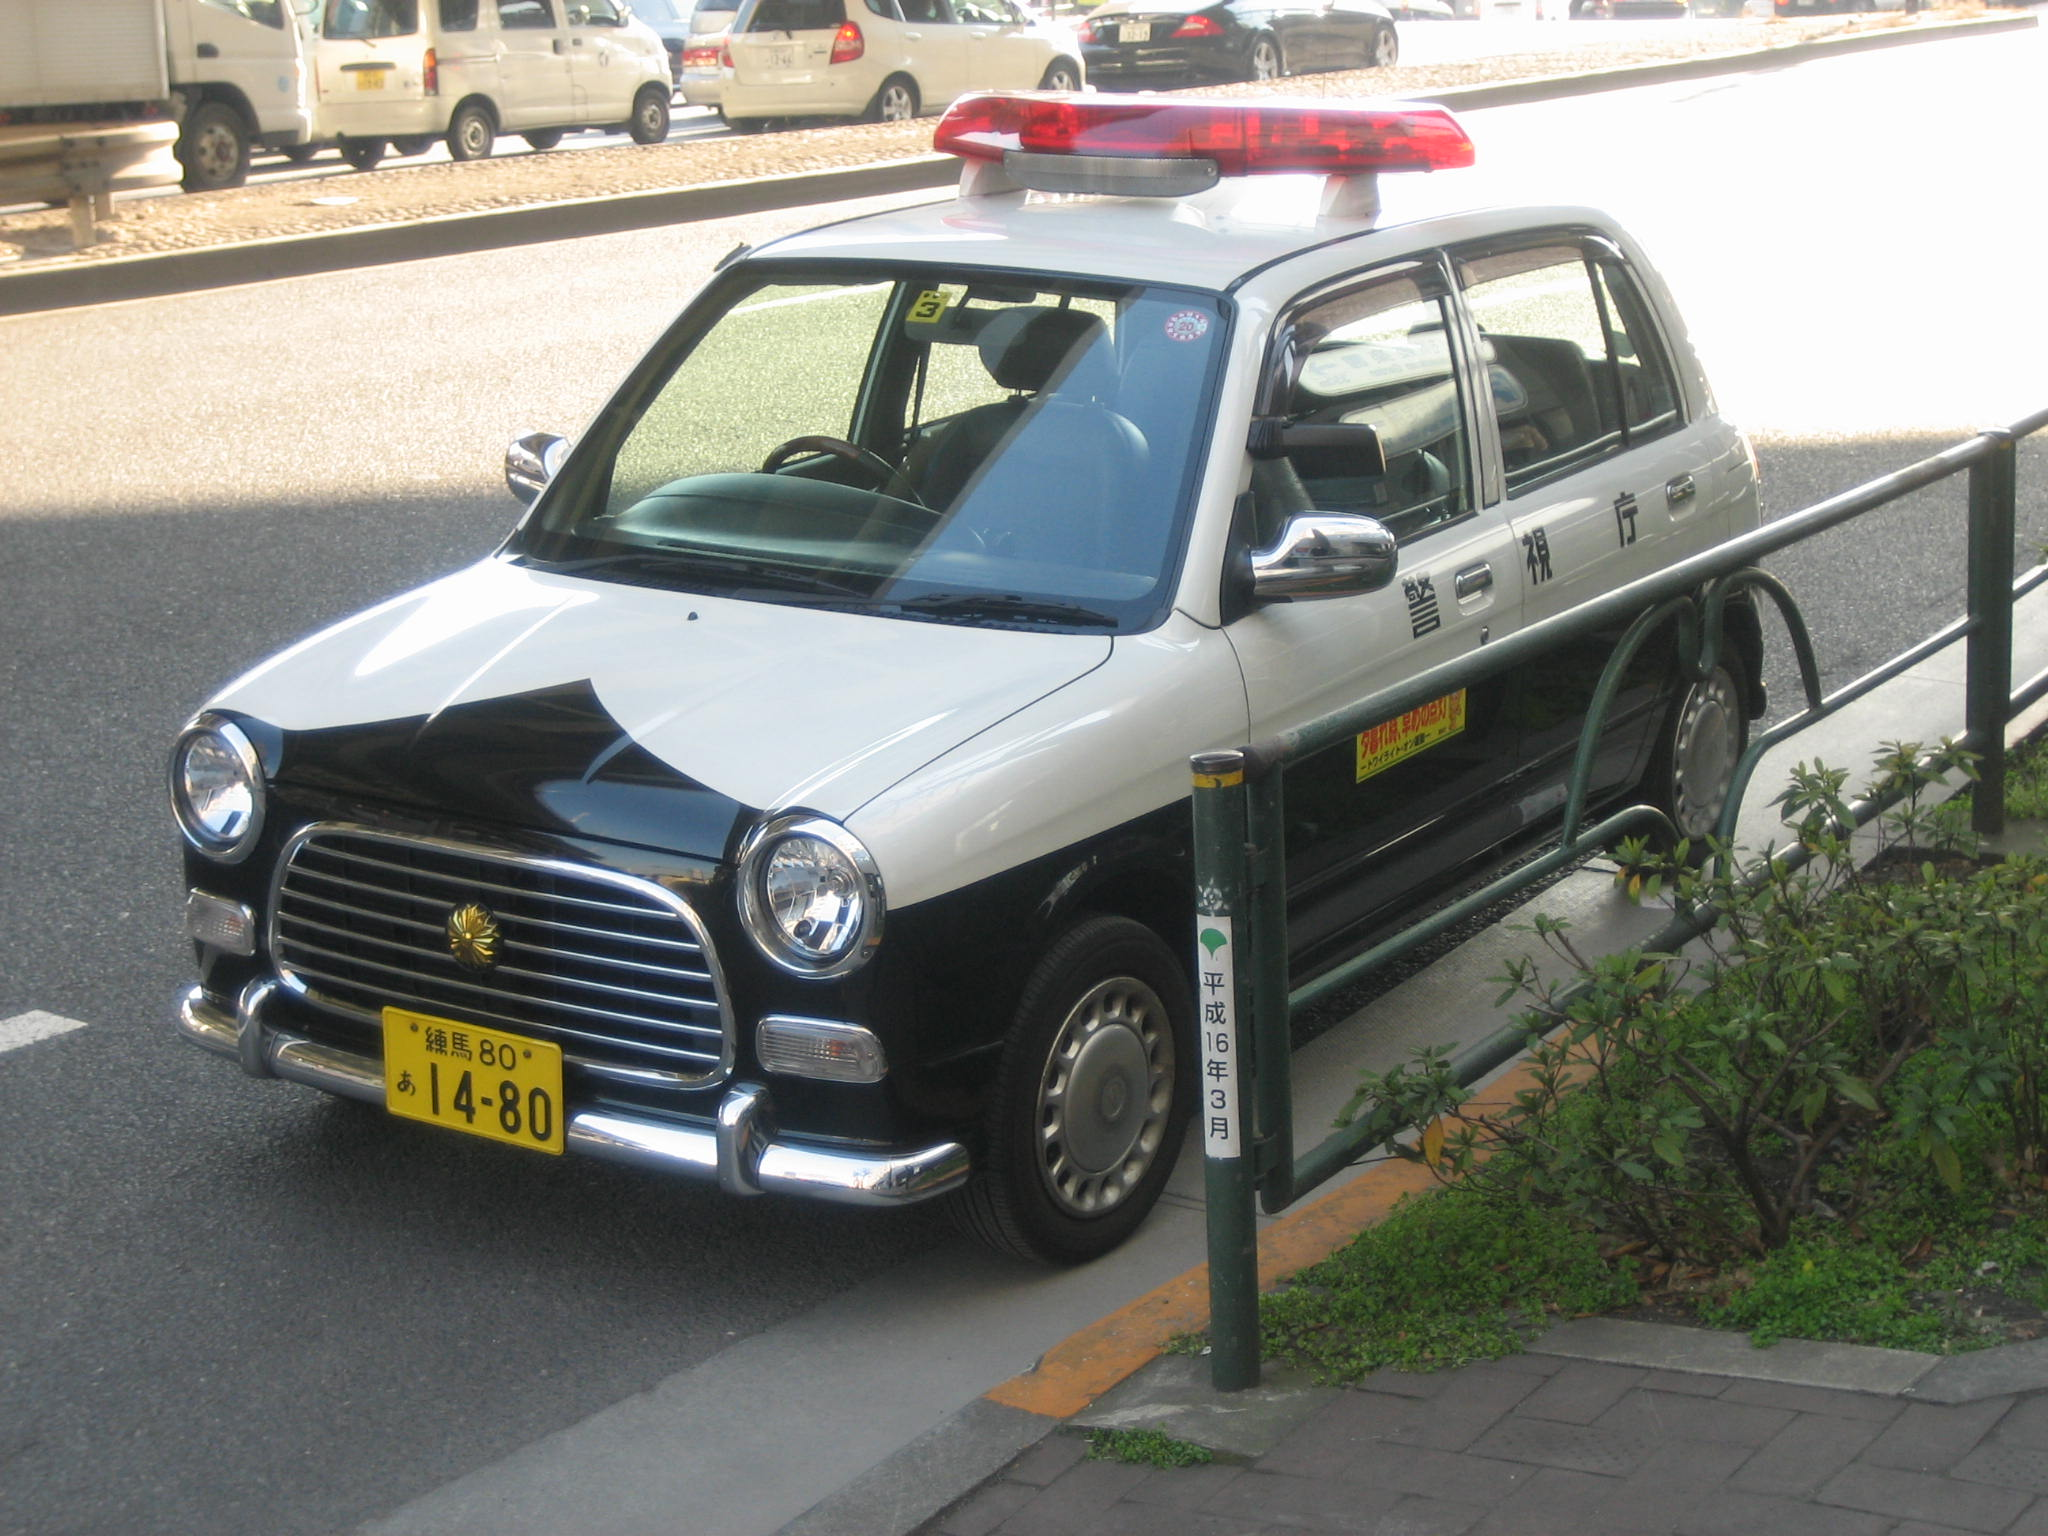 why do you suppose you never hear of high speed police chases in japan?